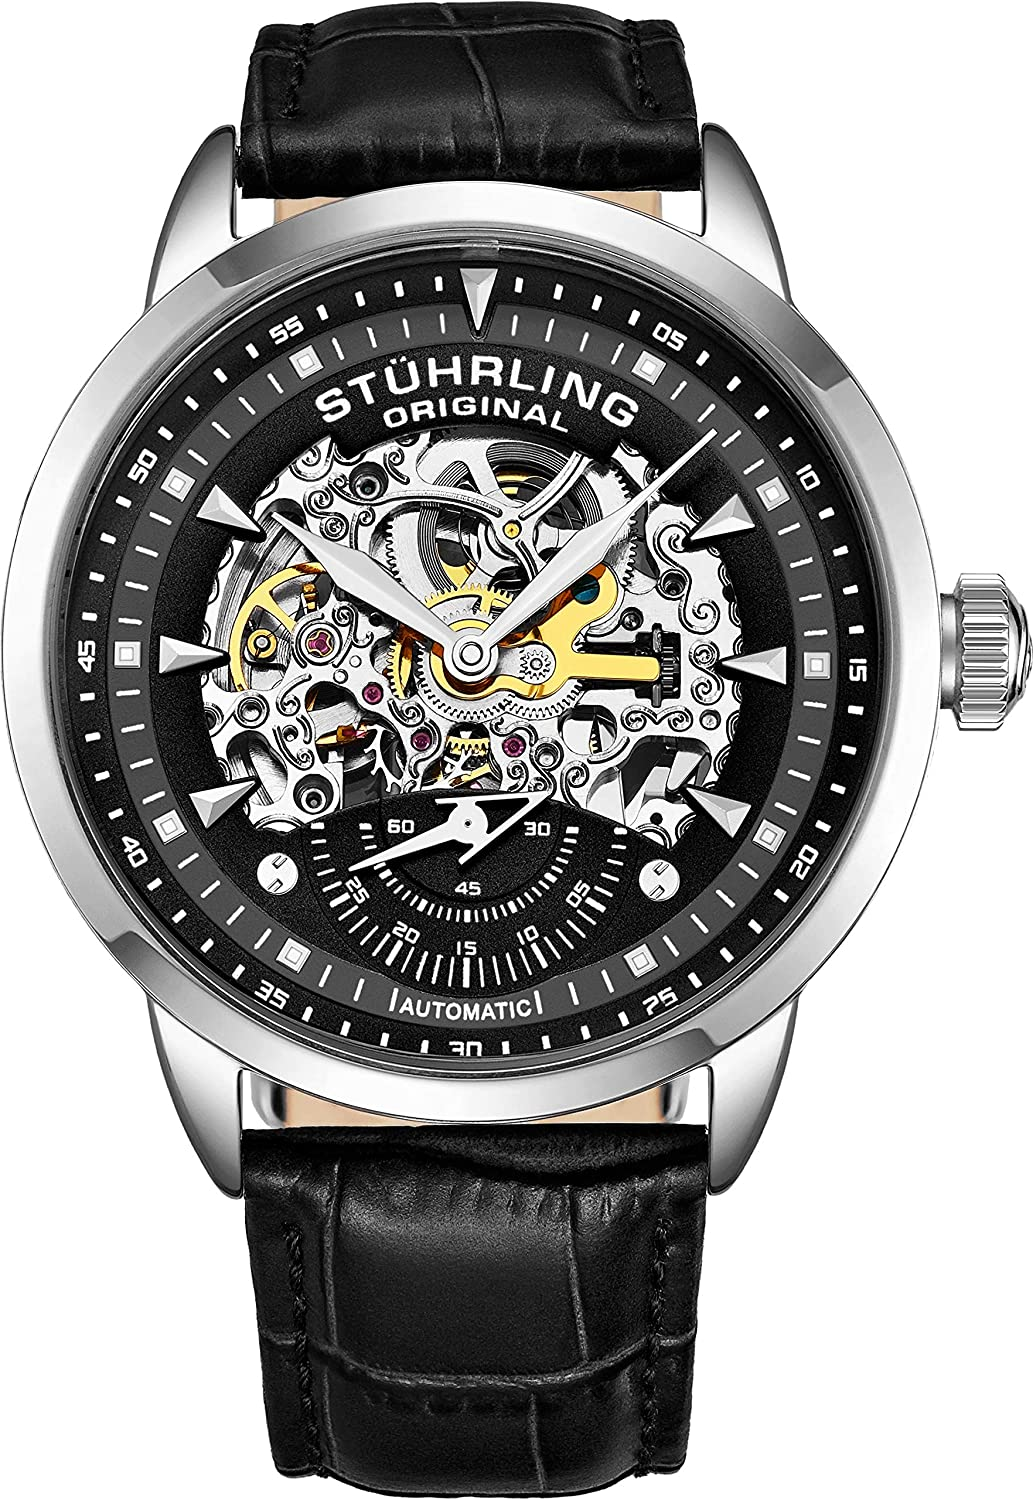 Stuhrling Original Mens Automatic Watch Skeleton Watches for Men – Black Leather Watch Strap Mechanical Watch Silver Executive Watch Collection